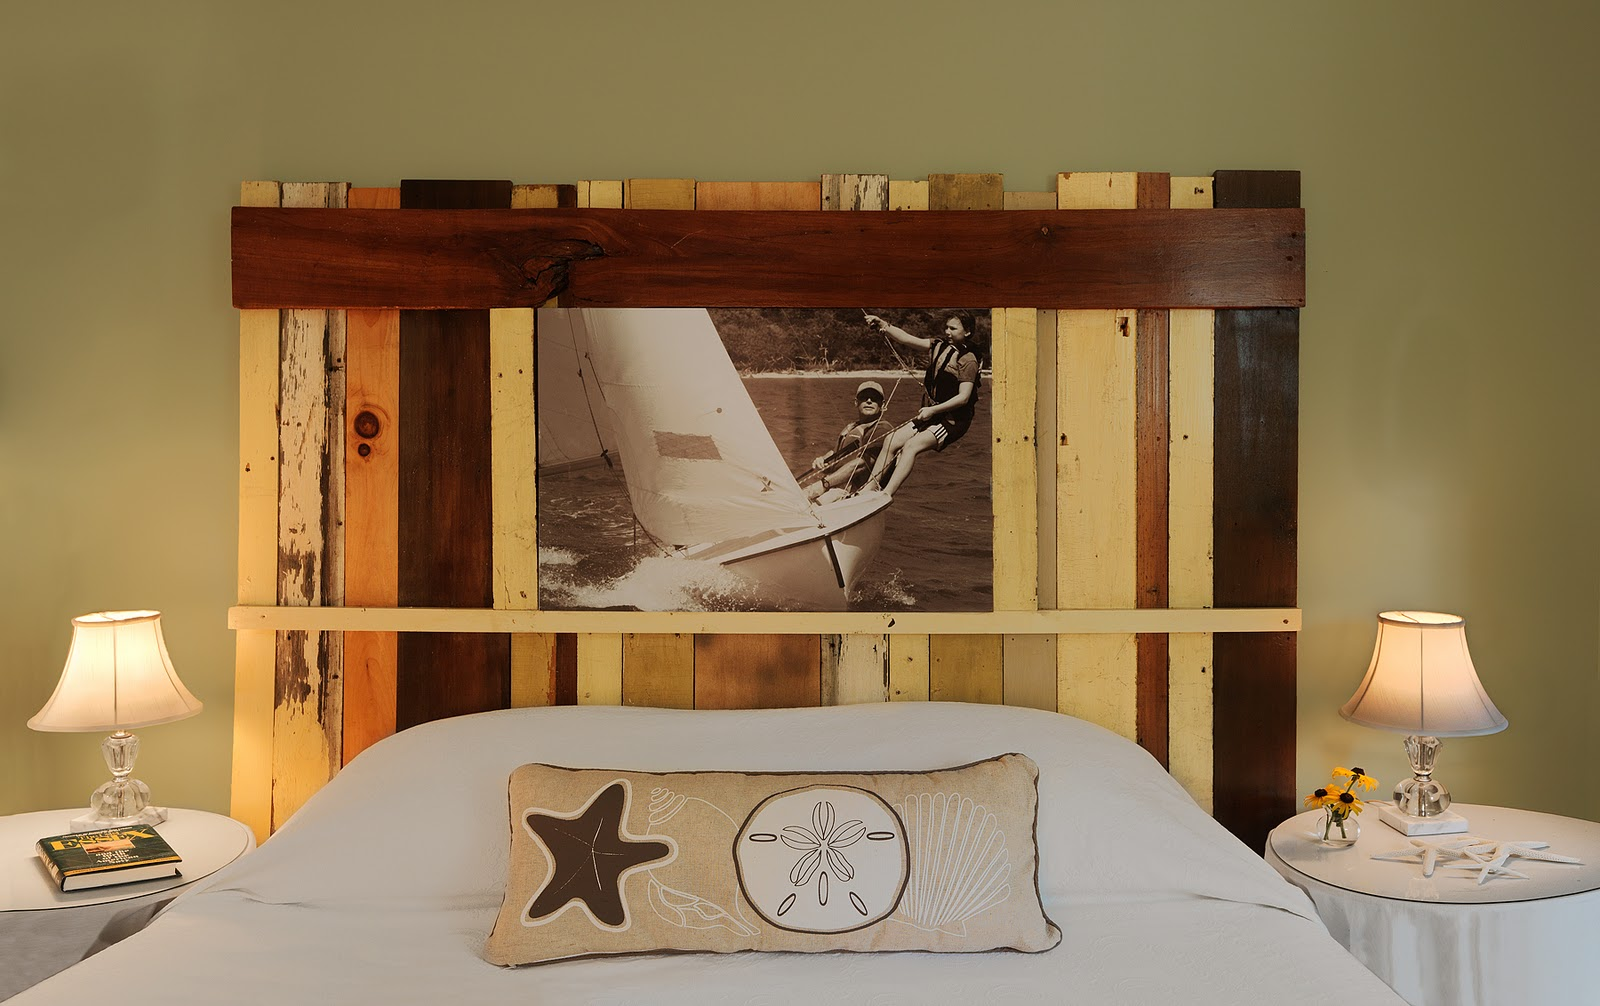 CHECK OUT MY SALVAGED WOOD HEADBOARD AND OTHER DIY HEADBOARD IDEAS! |